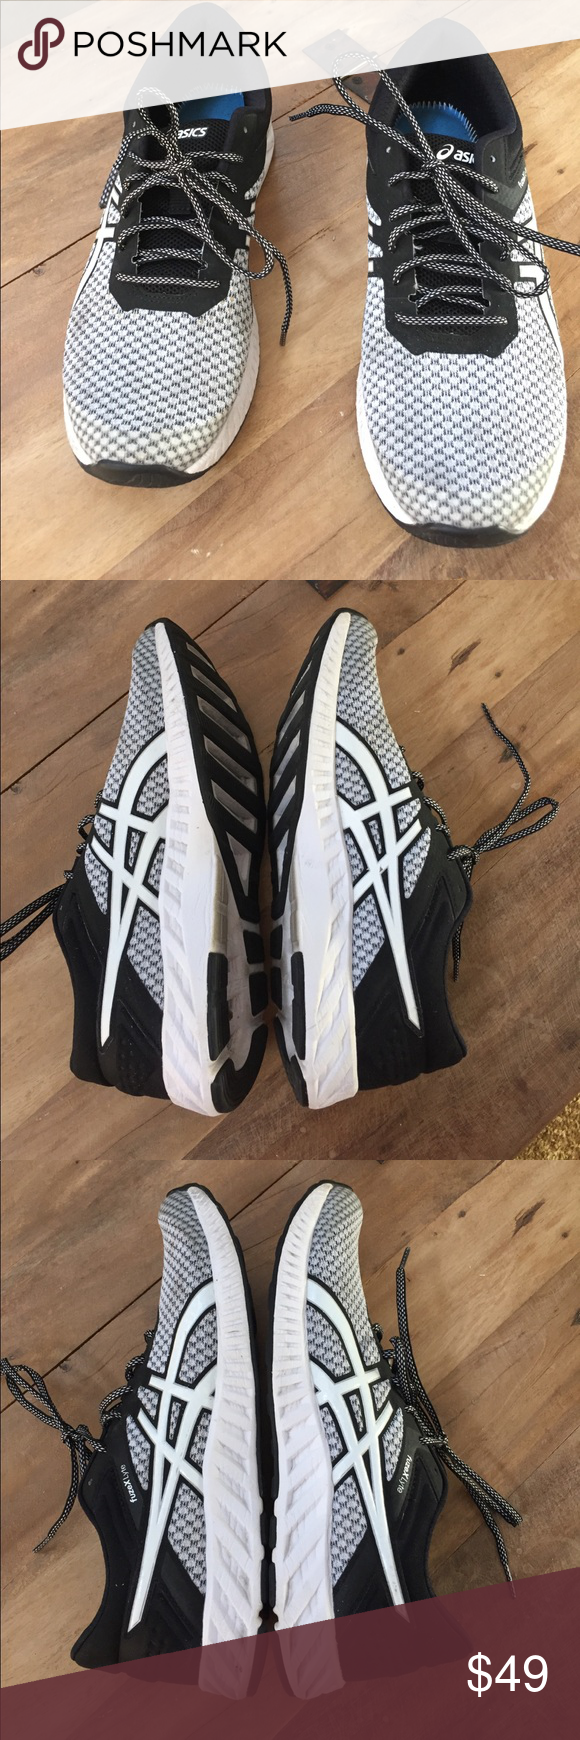 timeless design abfb8 fb3eb ASICS FUZEX LYTE 2 LIGHTWEIGHT RUNNING SHOE Brand new condition only worn a  handful of times